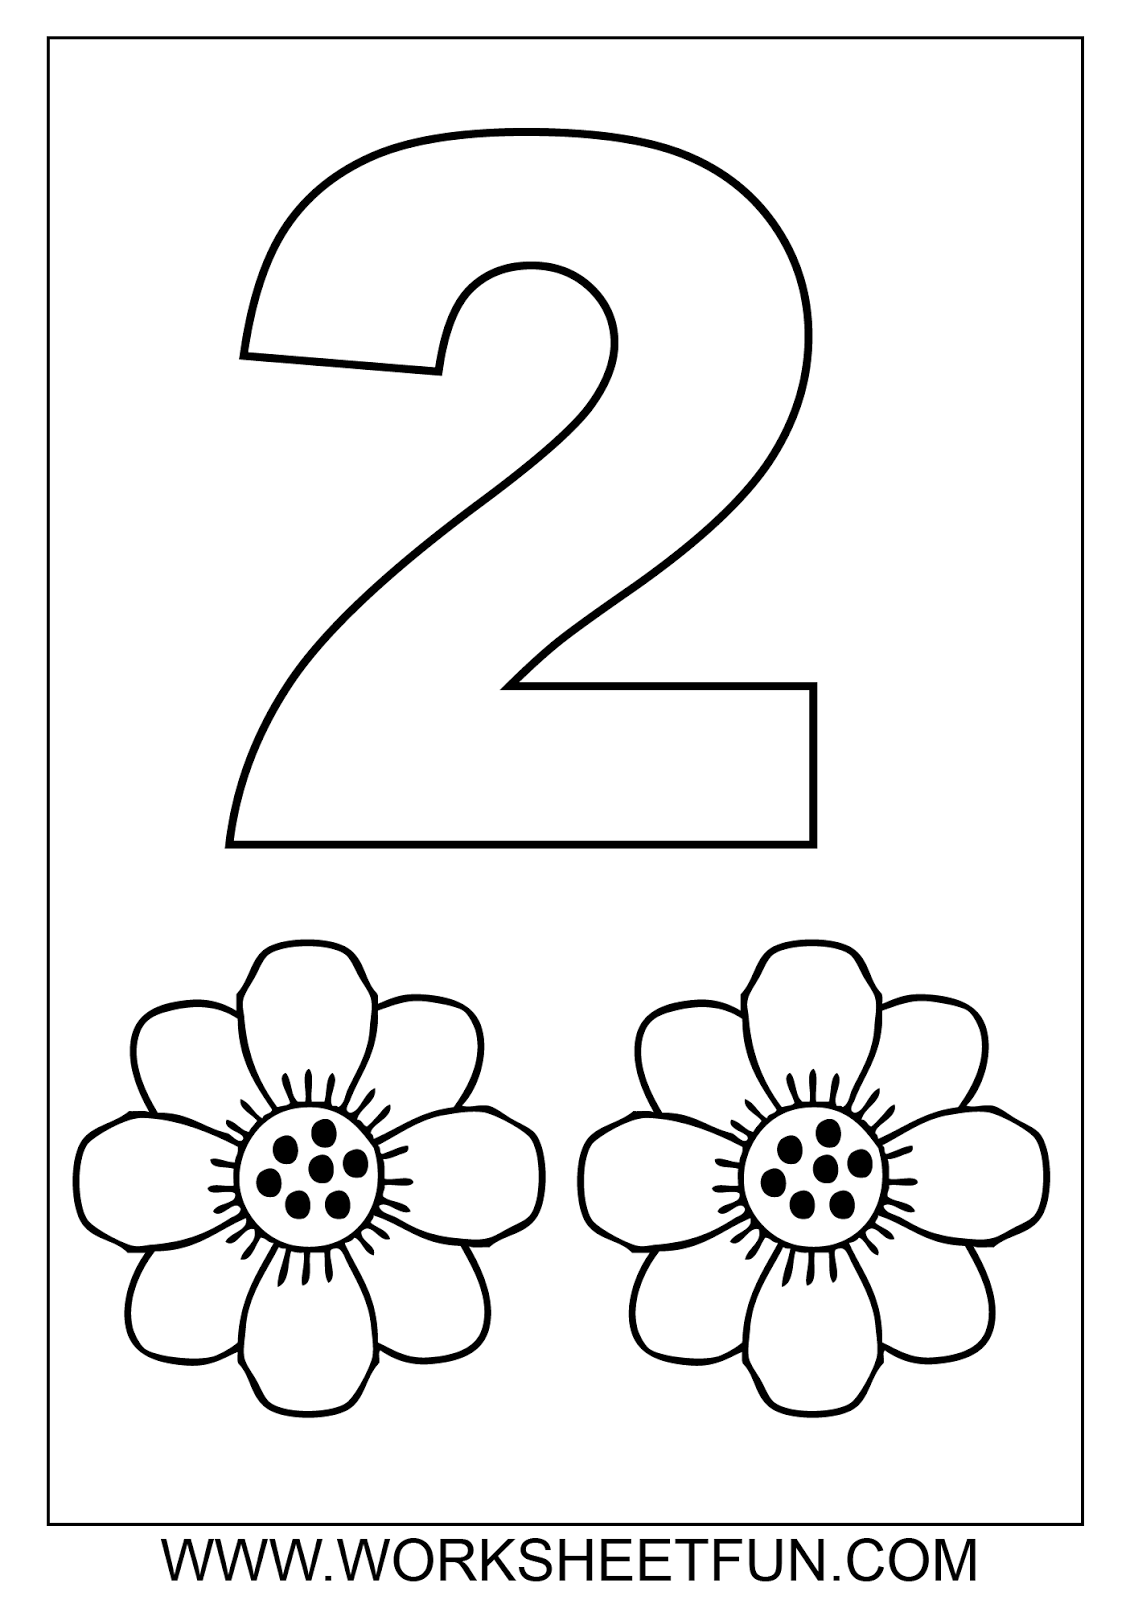 14 Best Images Of Tracing Numbers 6 10 Worksheets